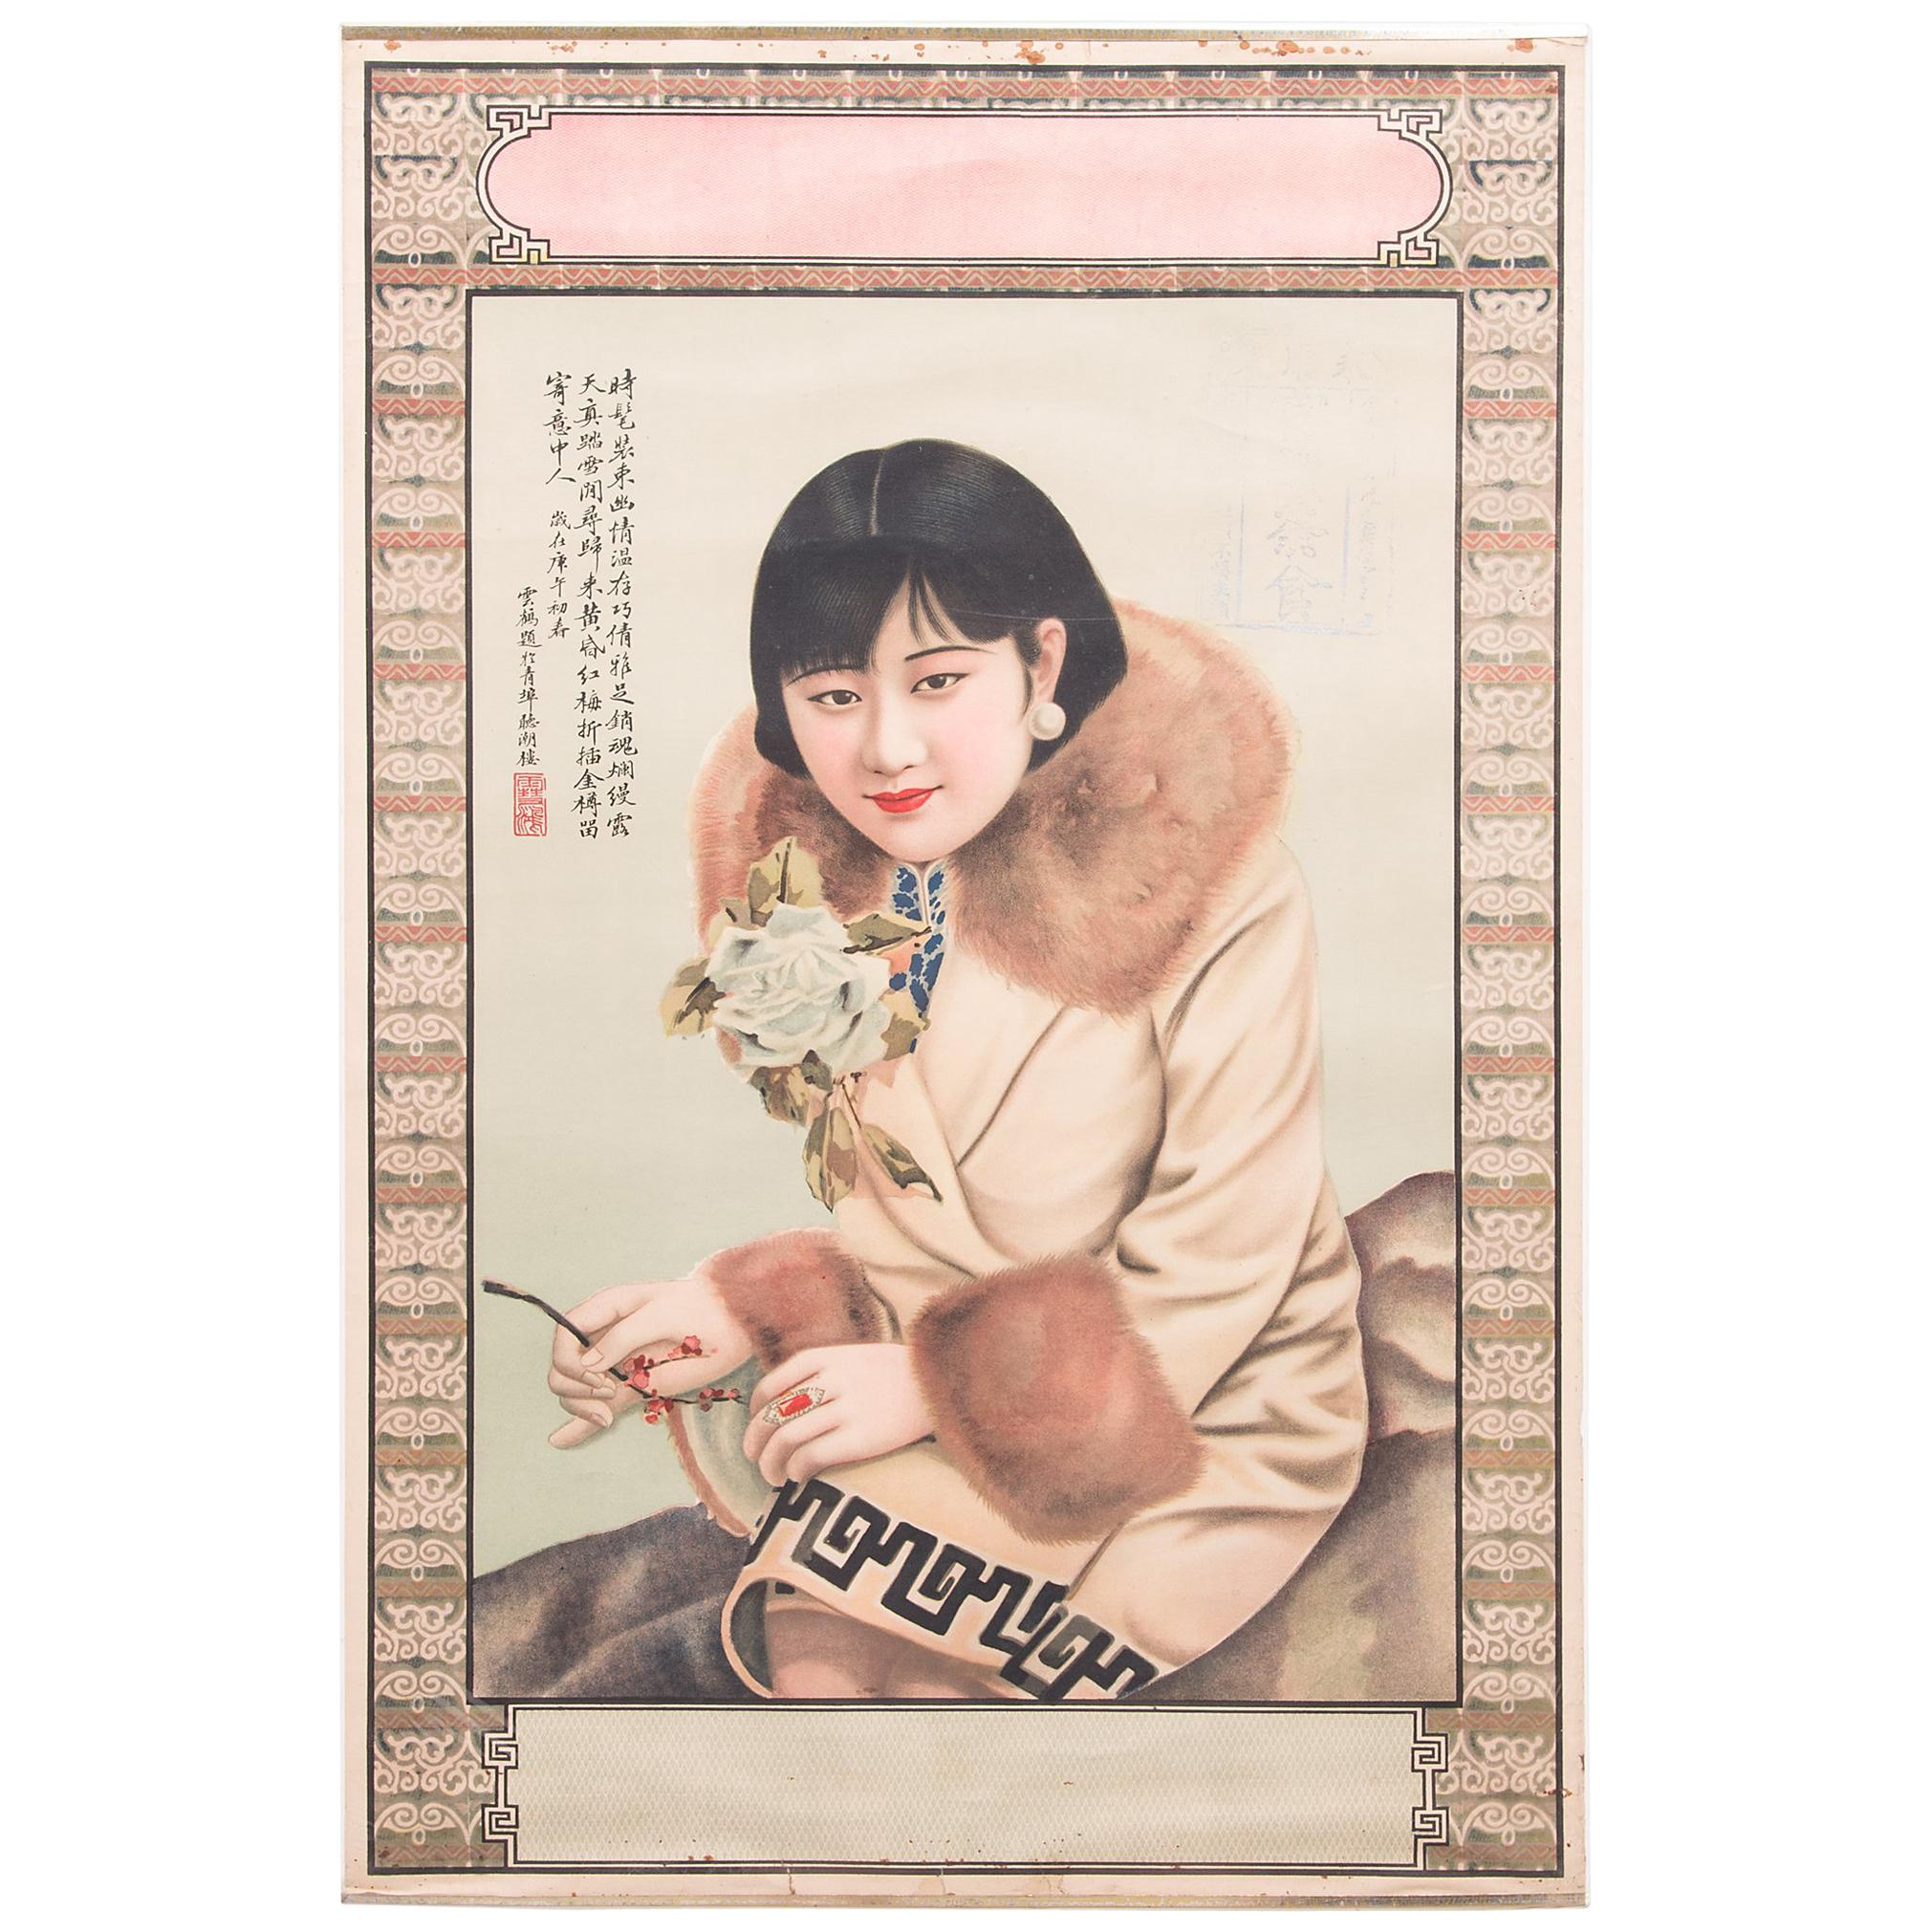 Vintage Chinese Deco Advertisement Poster